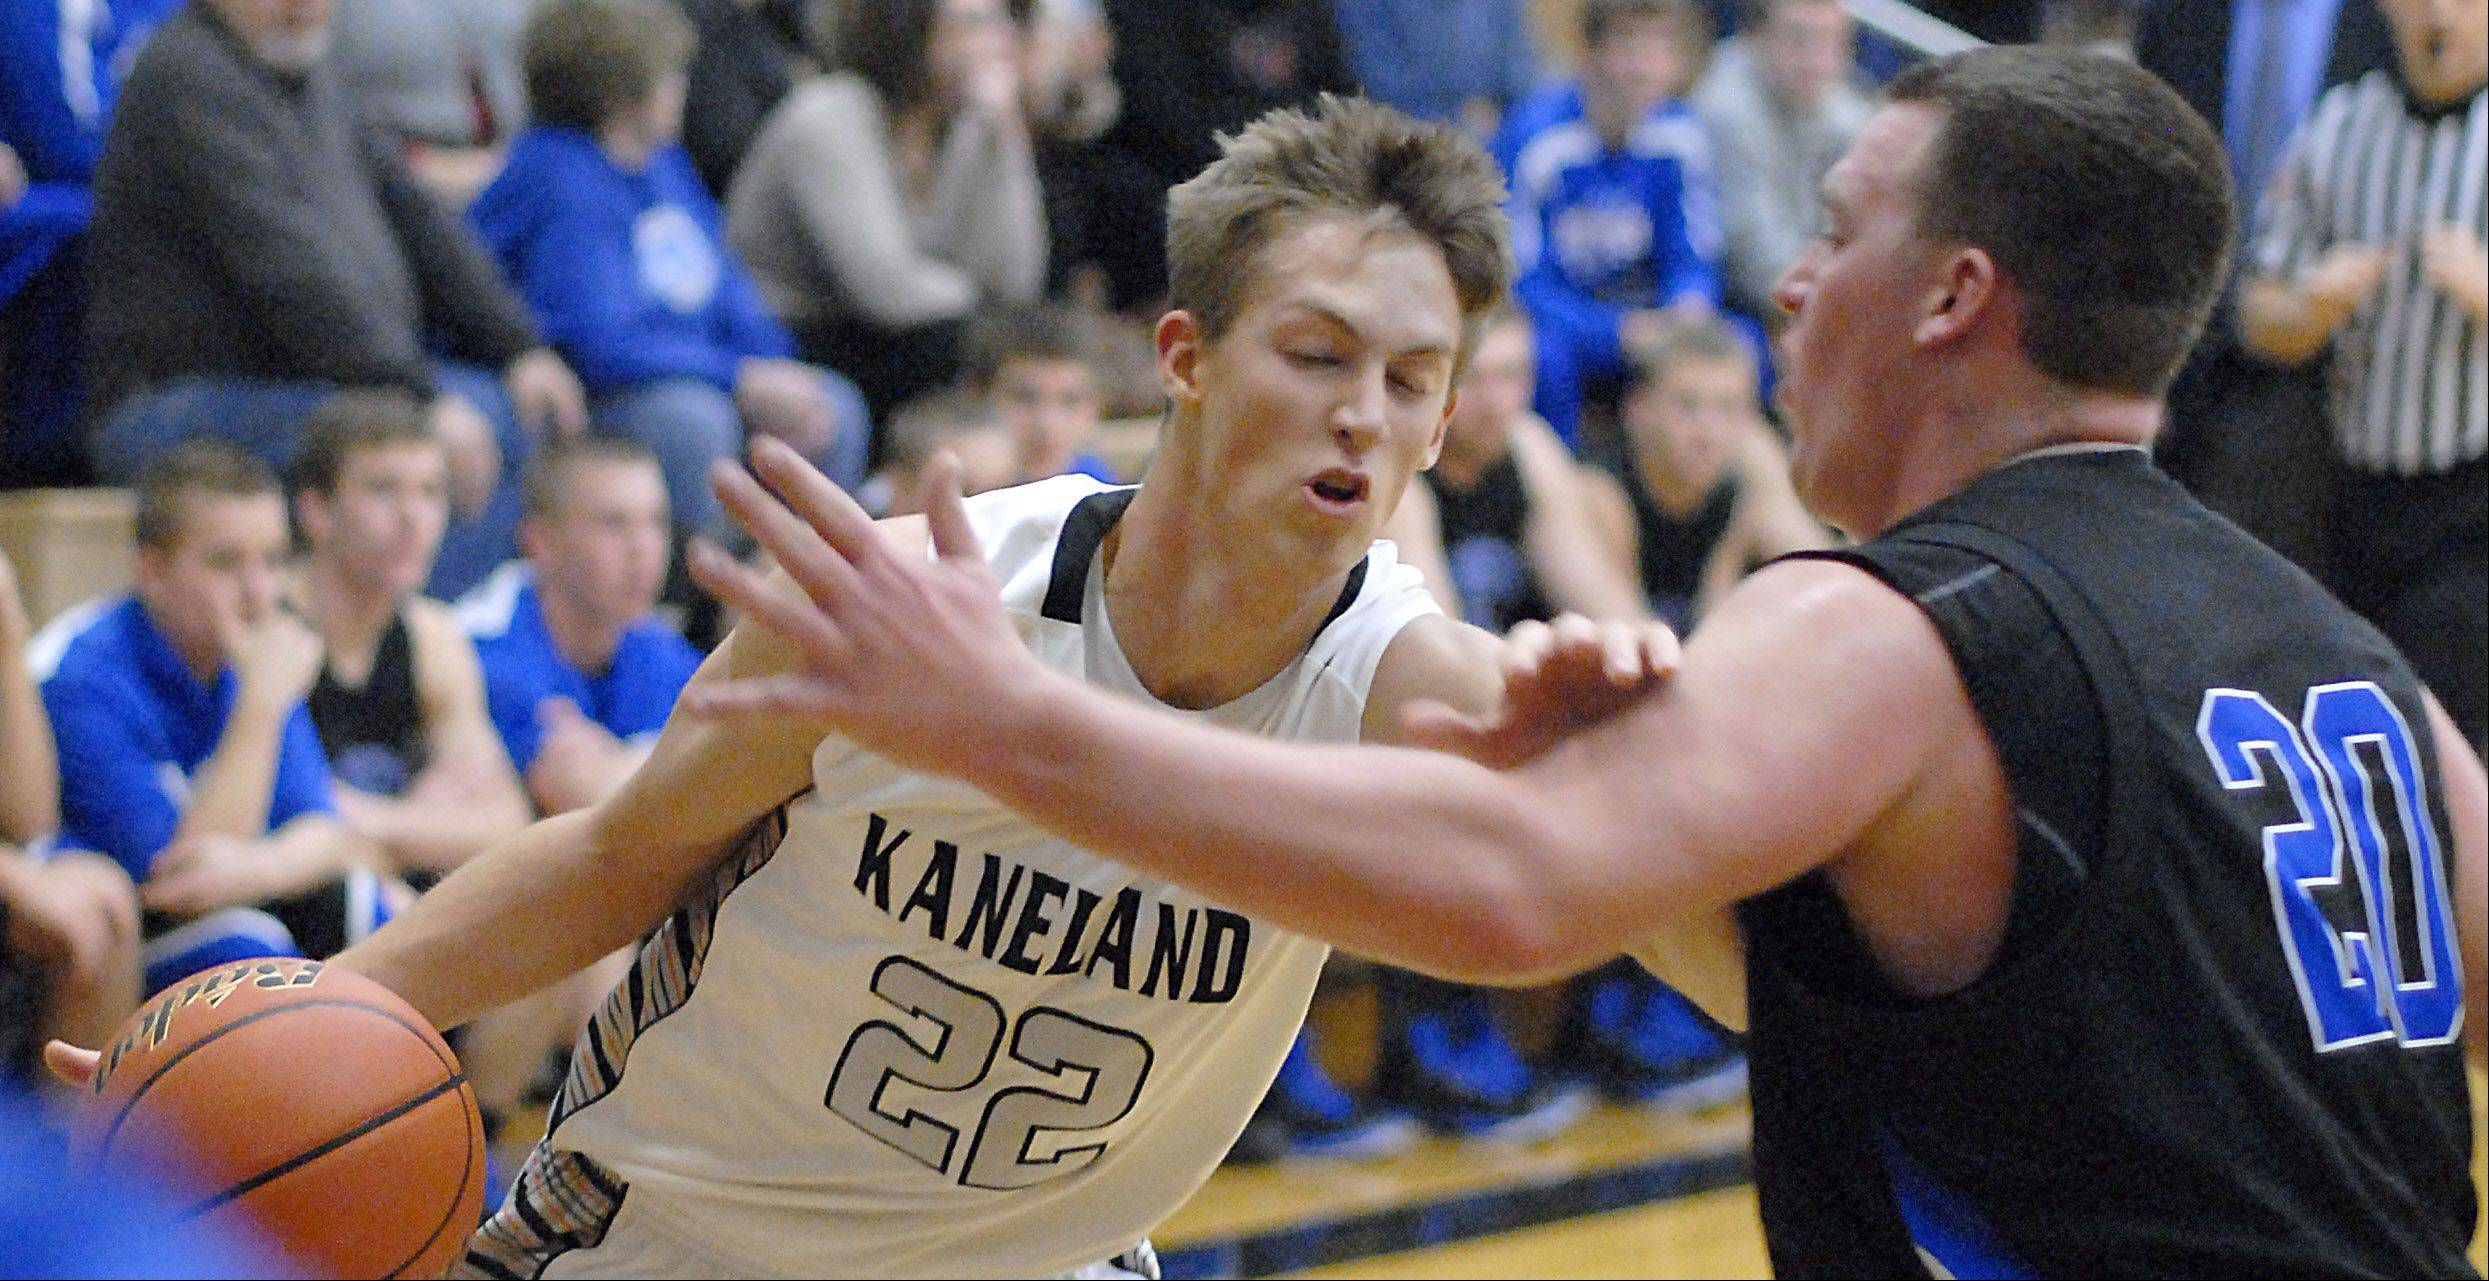 Images from the Hinckley-Big Rock vs. Kaneland basketball game Tuesday, December 11, 2012.